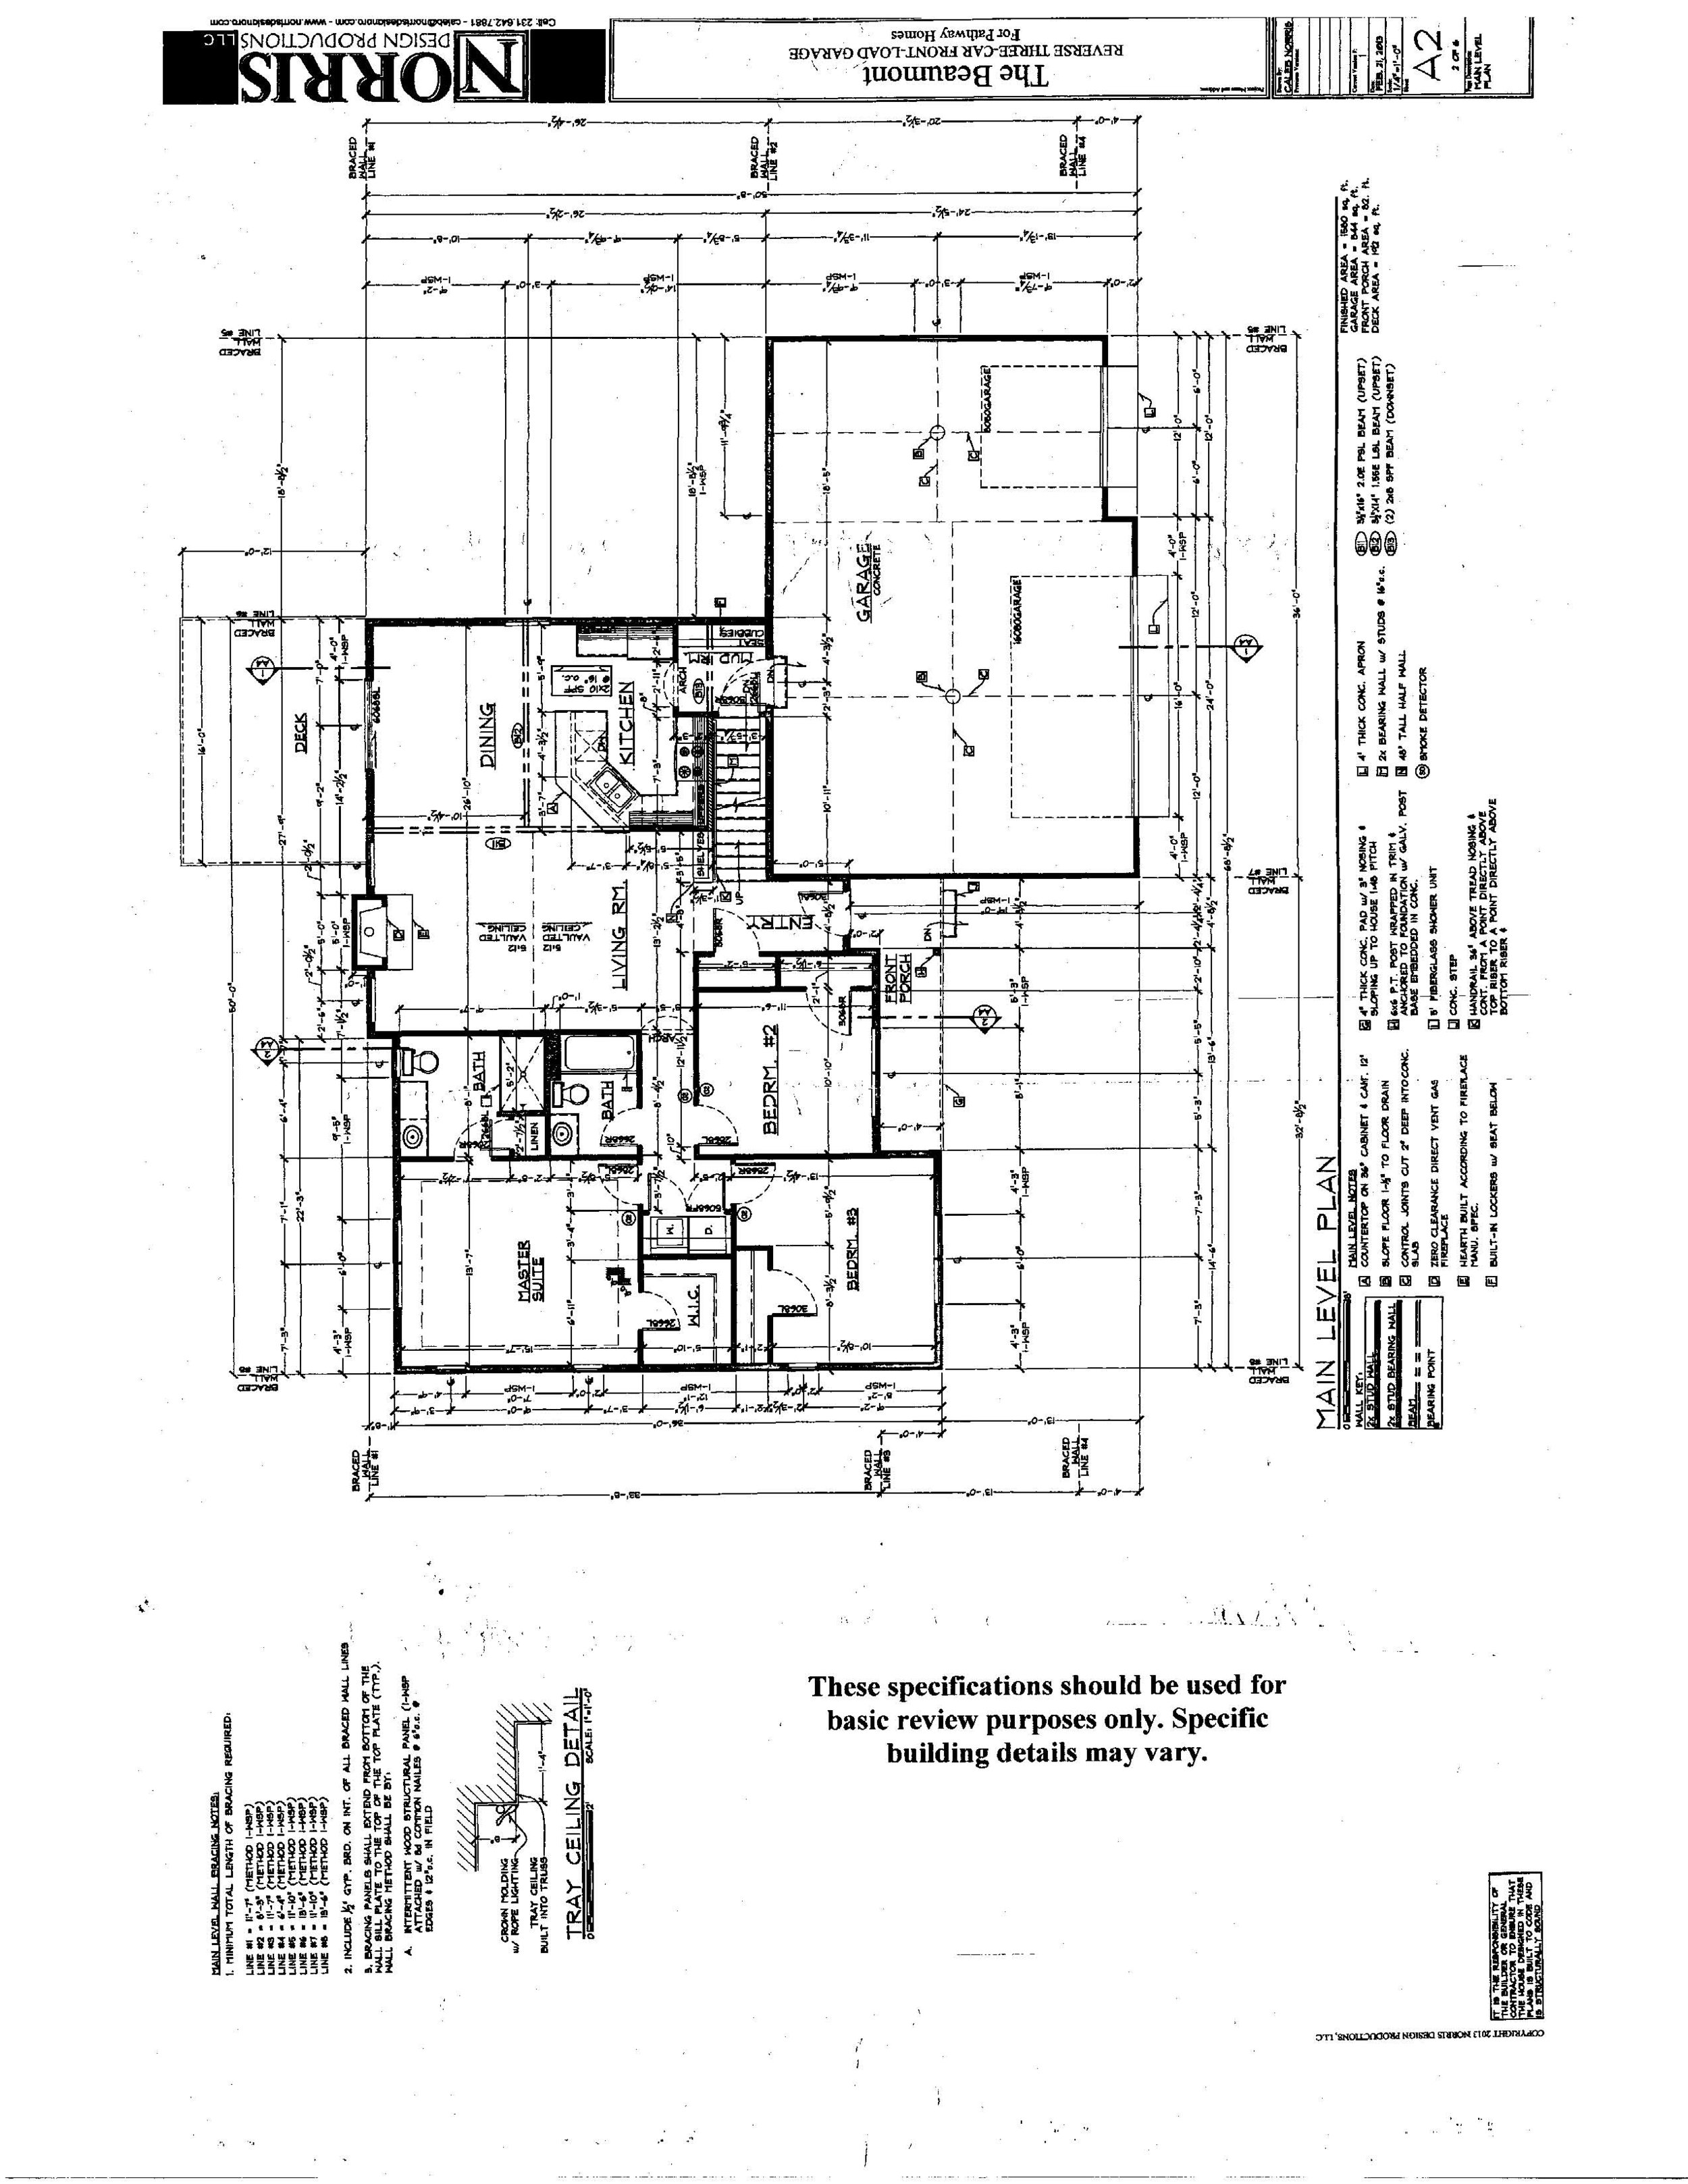 10049 Fishers Run, Traverse City, MI – Newer 2,175 Sq Ft Home on 1.32 Acres - Marketing Packet (21).jpg